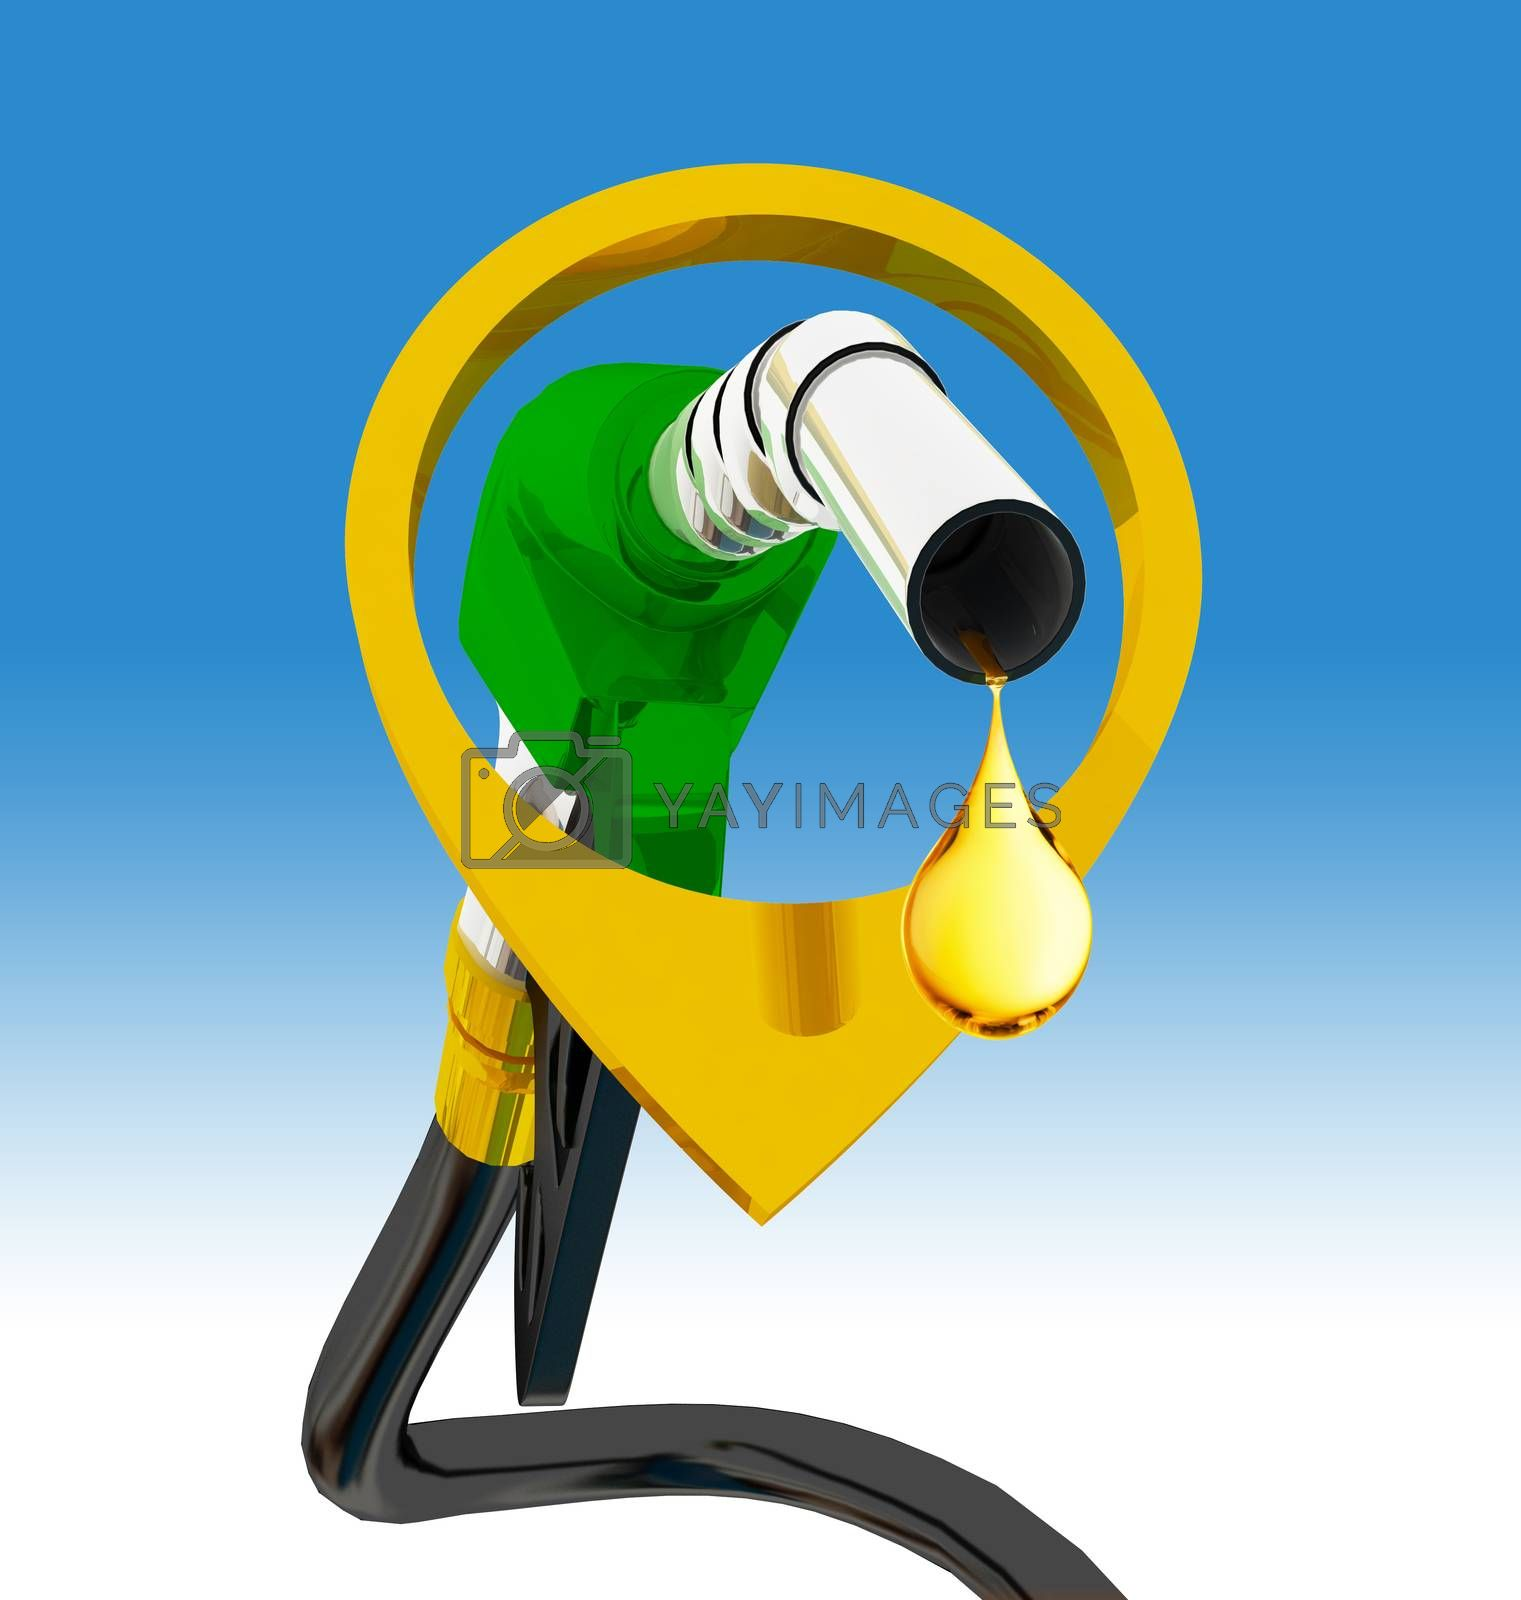 nozzle pumping gasoline in a tank, of fuel nozzle pouring gasoline over white background, nozzle pumping a gasoline fuel liquid in a tank of oil industry,